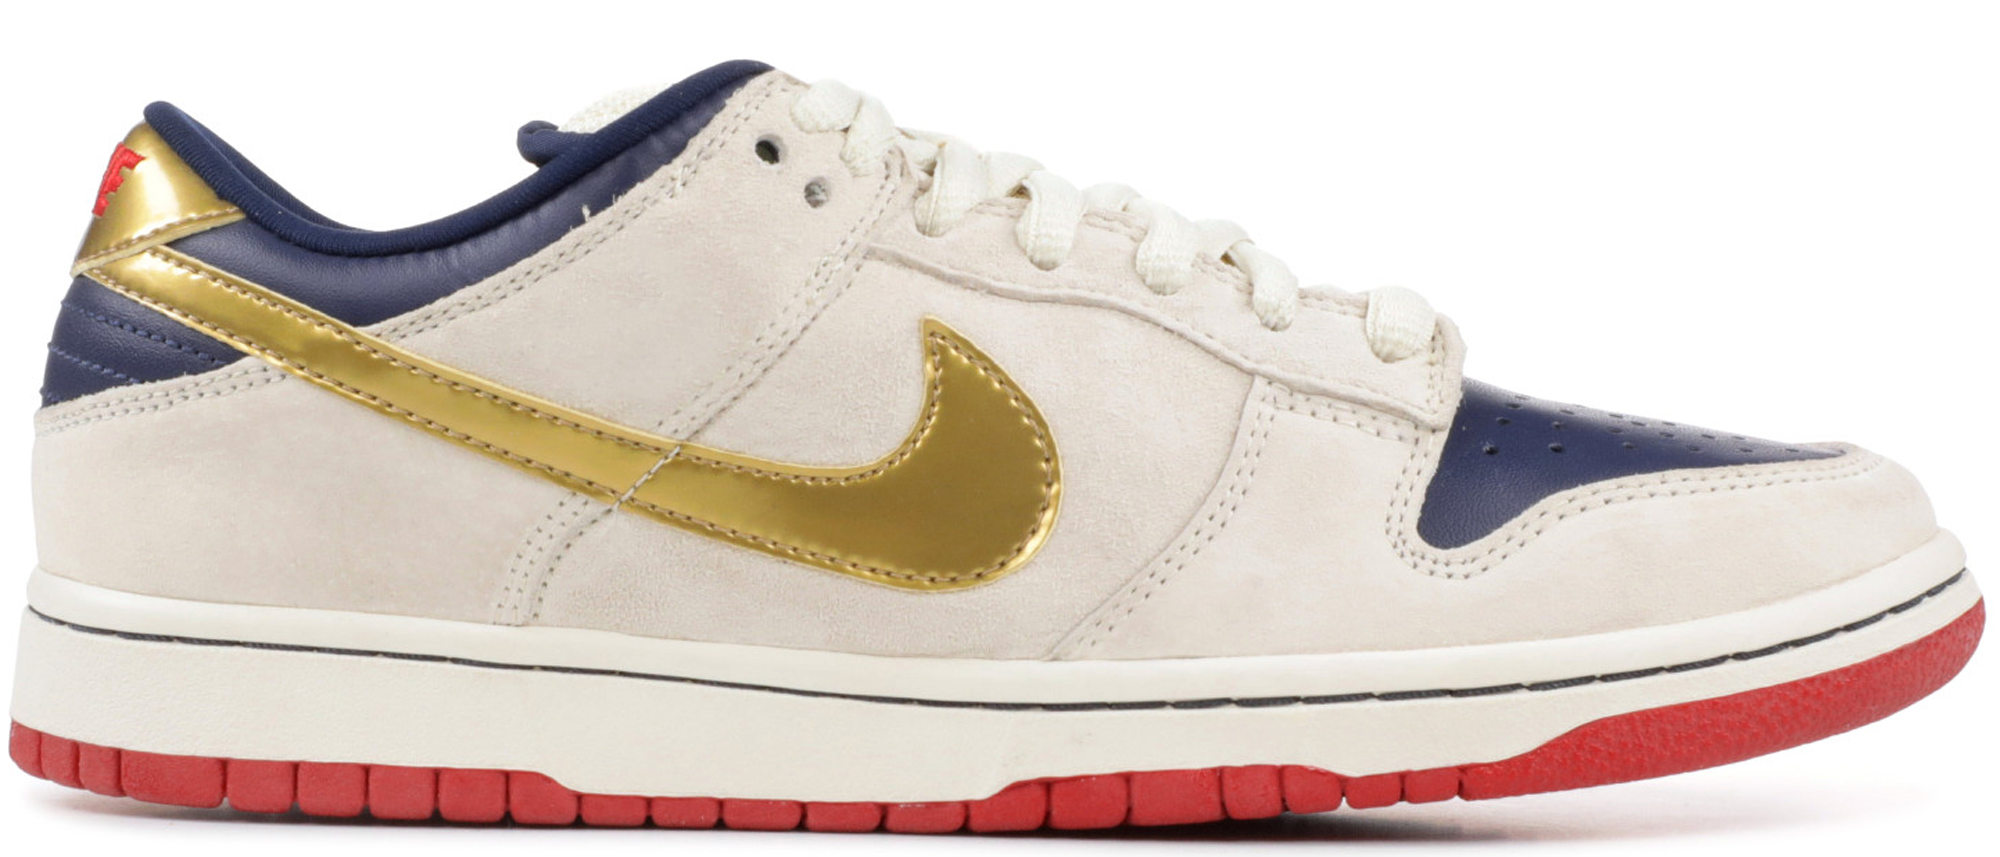 Nike SB Dunk Low Old Spice